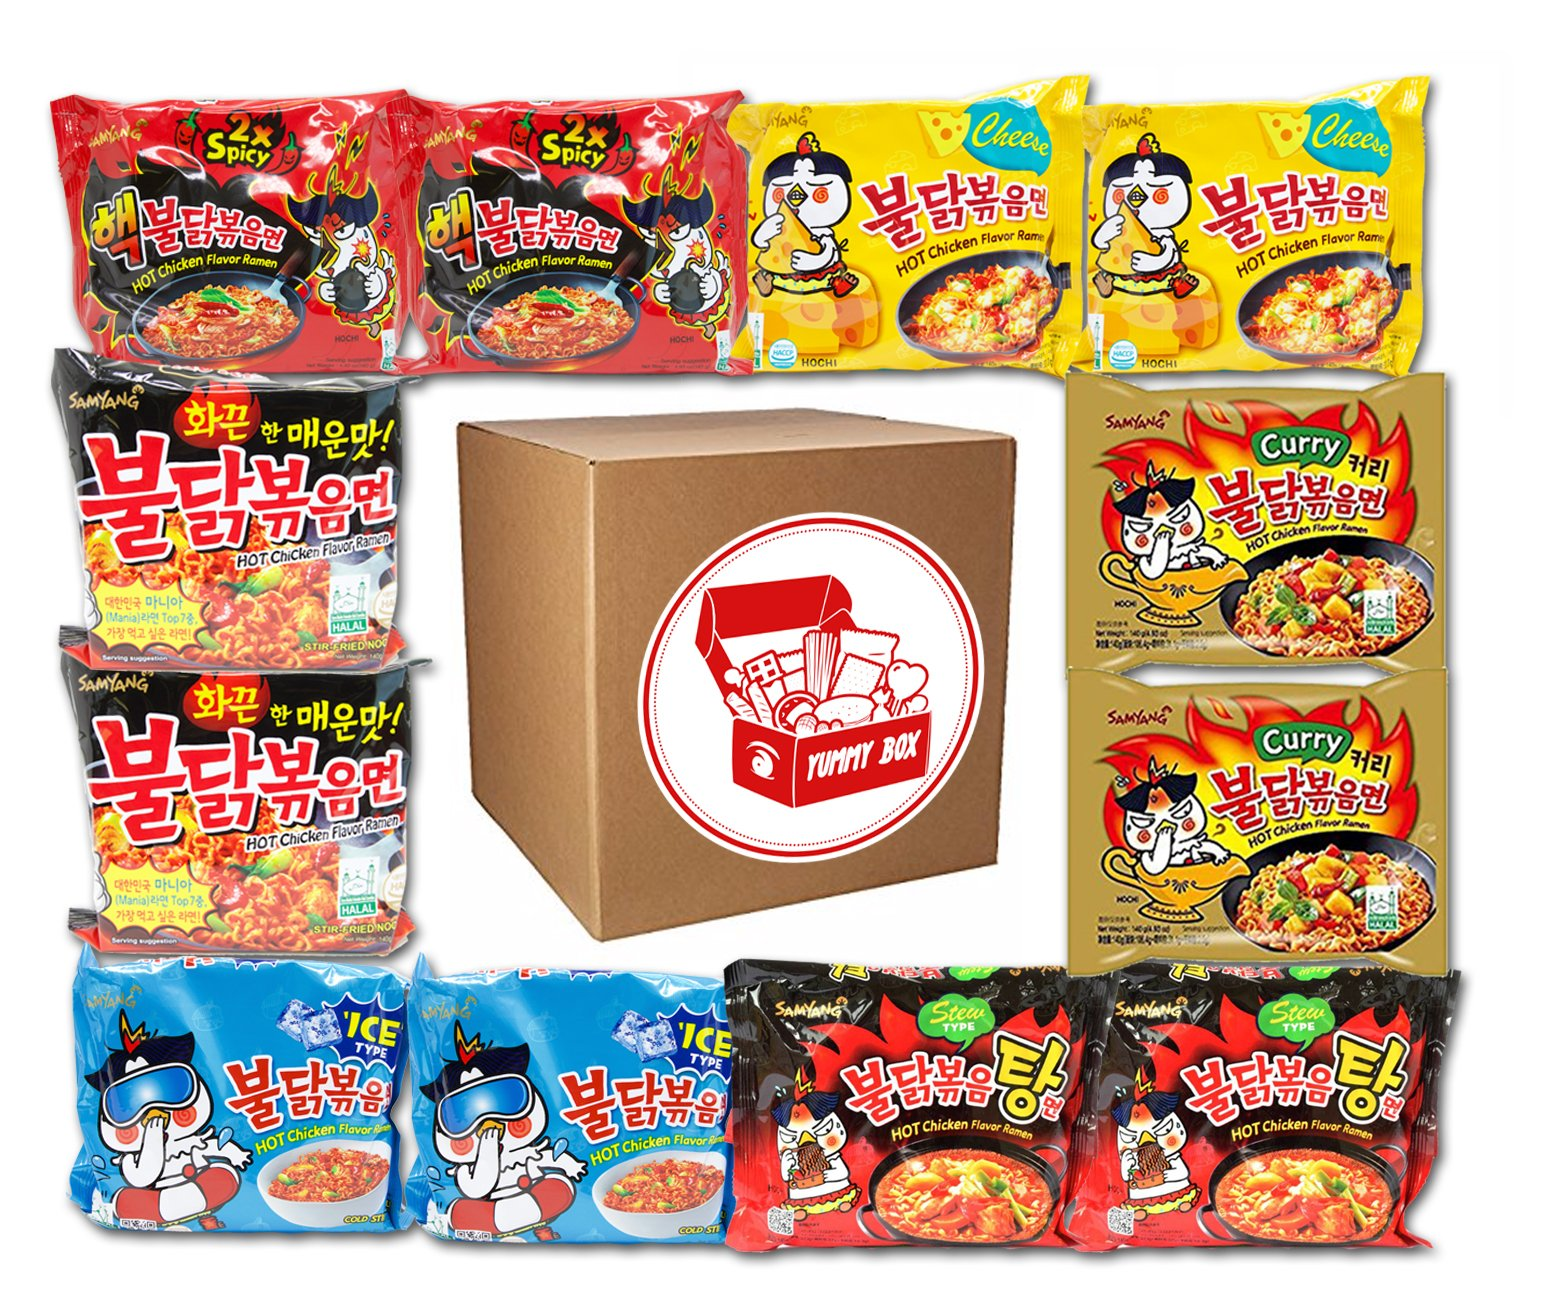 Samyang Ramen Spicy Hot Chicken Roasted Noodles Variety (12-Pack) | Hek Nuclear, Original, Cheese, Curry, Stew, Mala